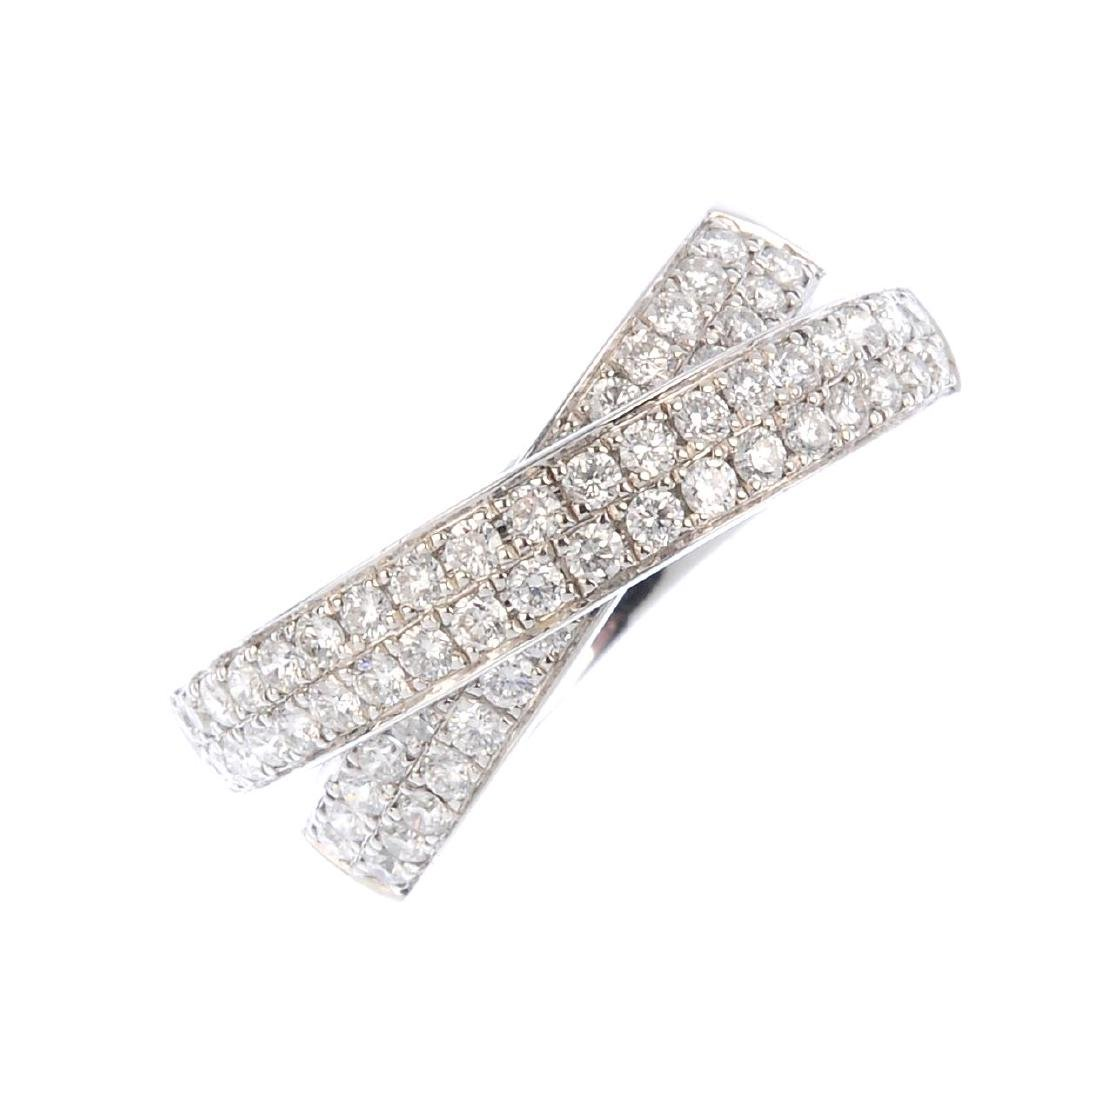 An 18ct gold diamond crossover ring. Designed as two